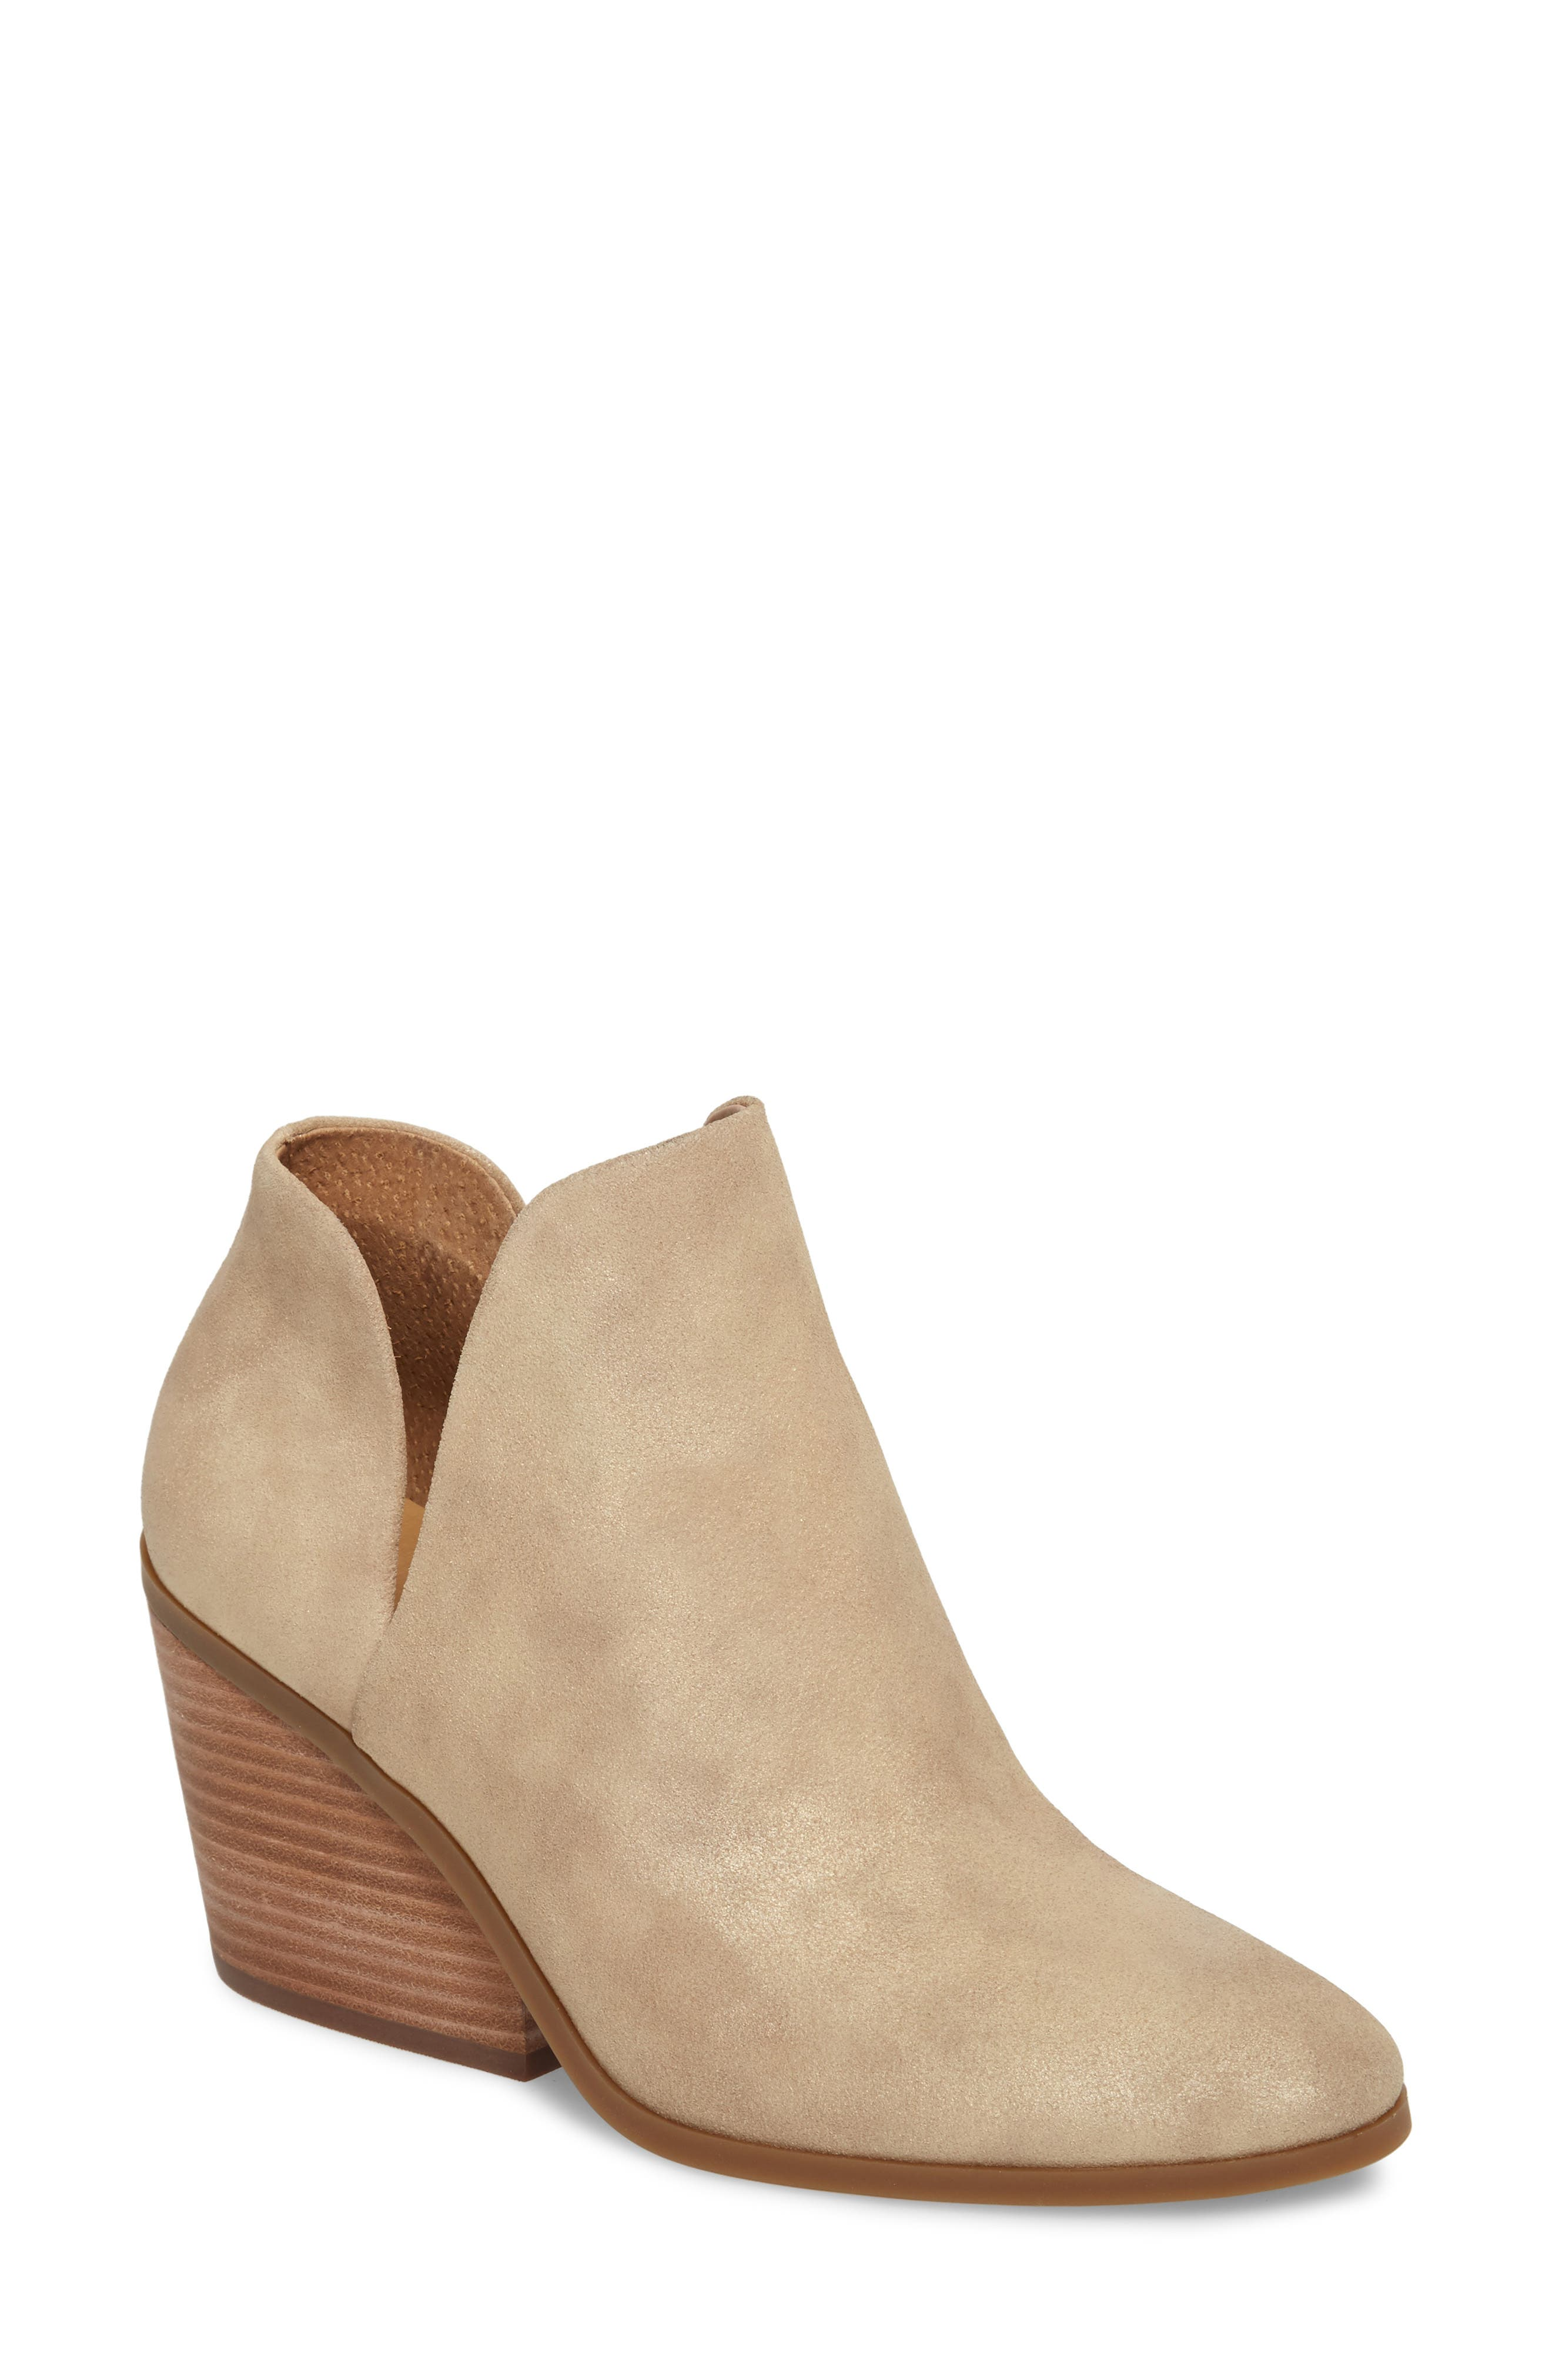 Lezzlee Bootie,                             Main thumbnail 1, color,                             Travertine Leather